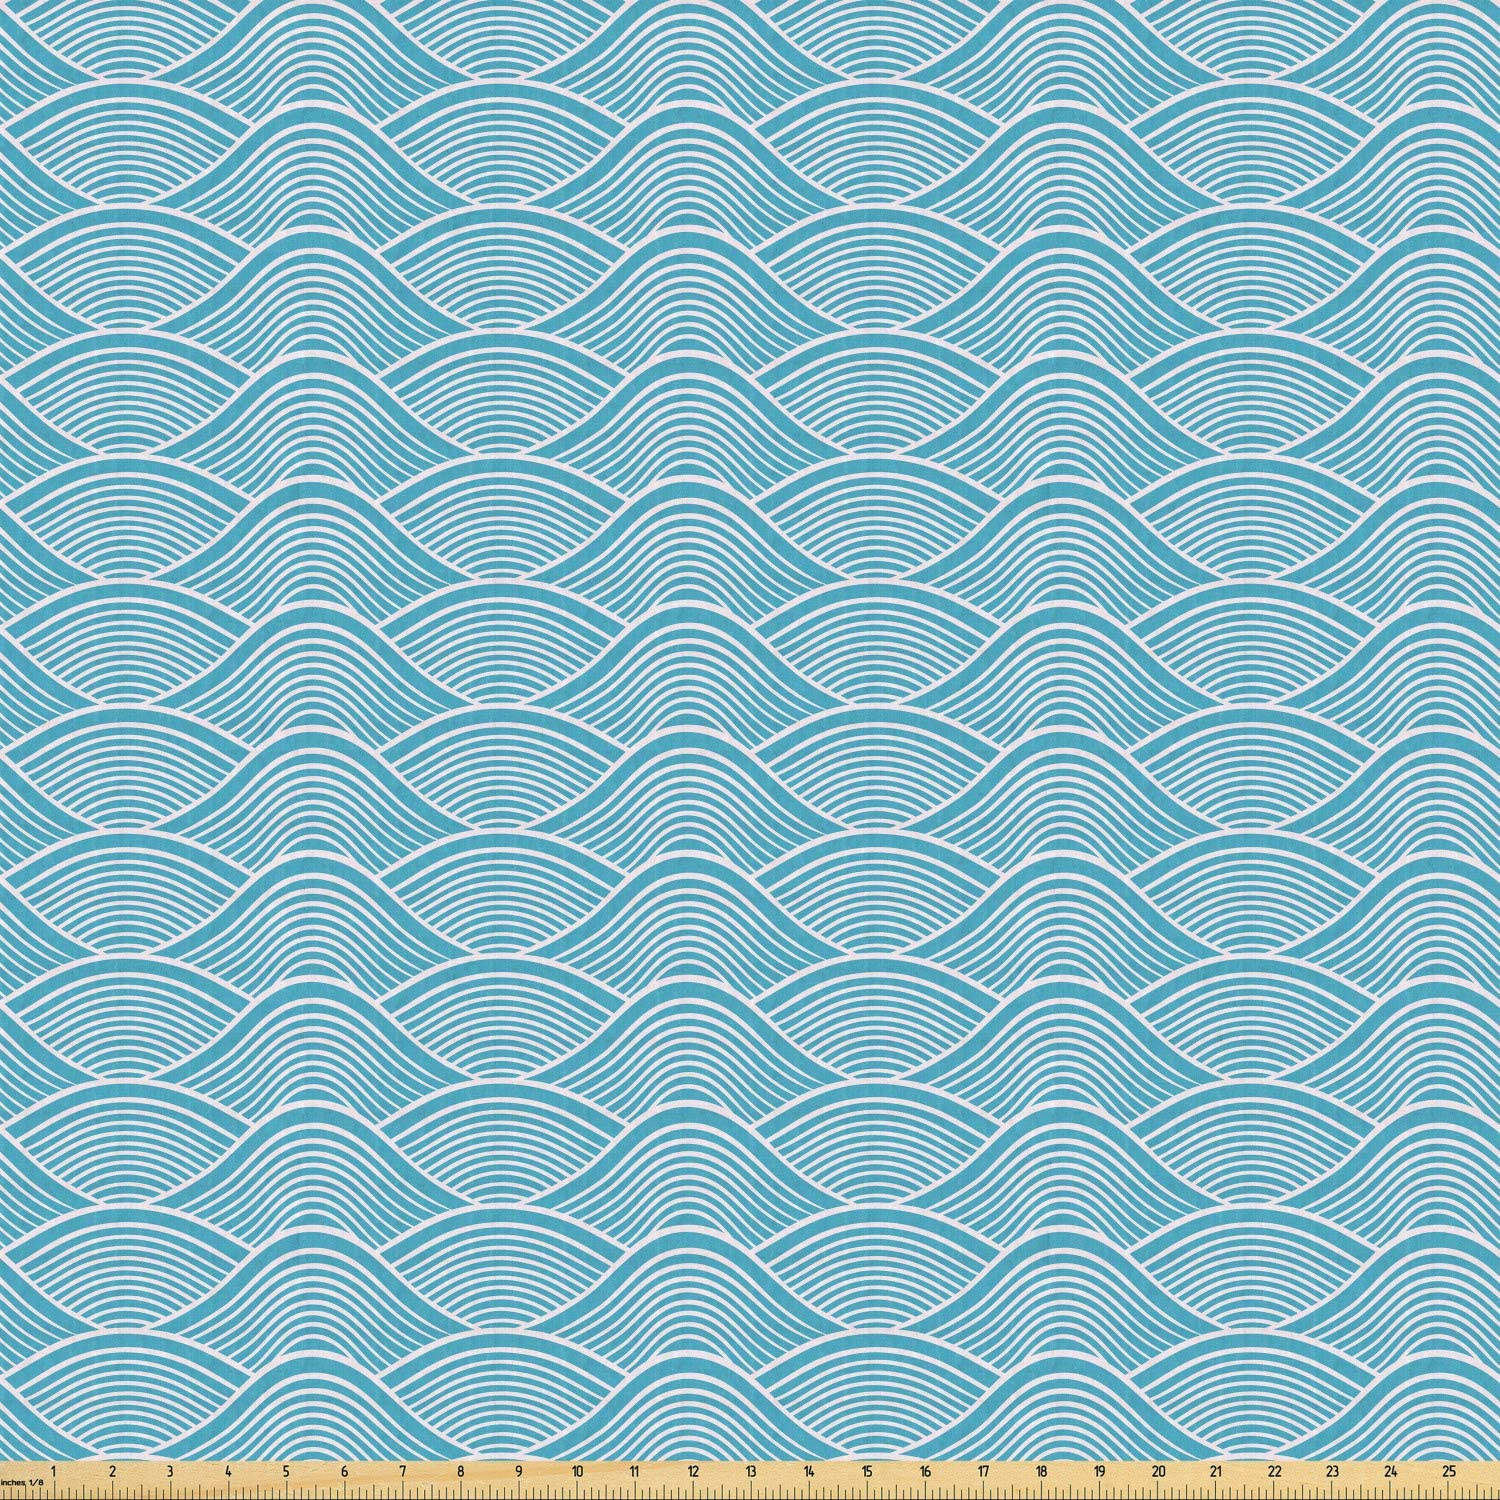 Ambesonne Blue Fabric by The Yard, Ocean Inspired Waves Pattern with Japanese Influences Nautical Maritime Aquatic, Stretch Knit Fabric for Clothing Sewing and Arts Crafts, 1 Yard, Sky Blue